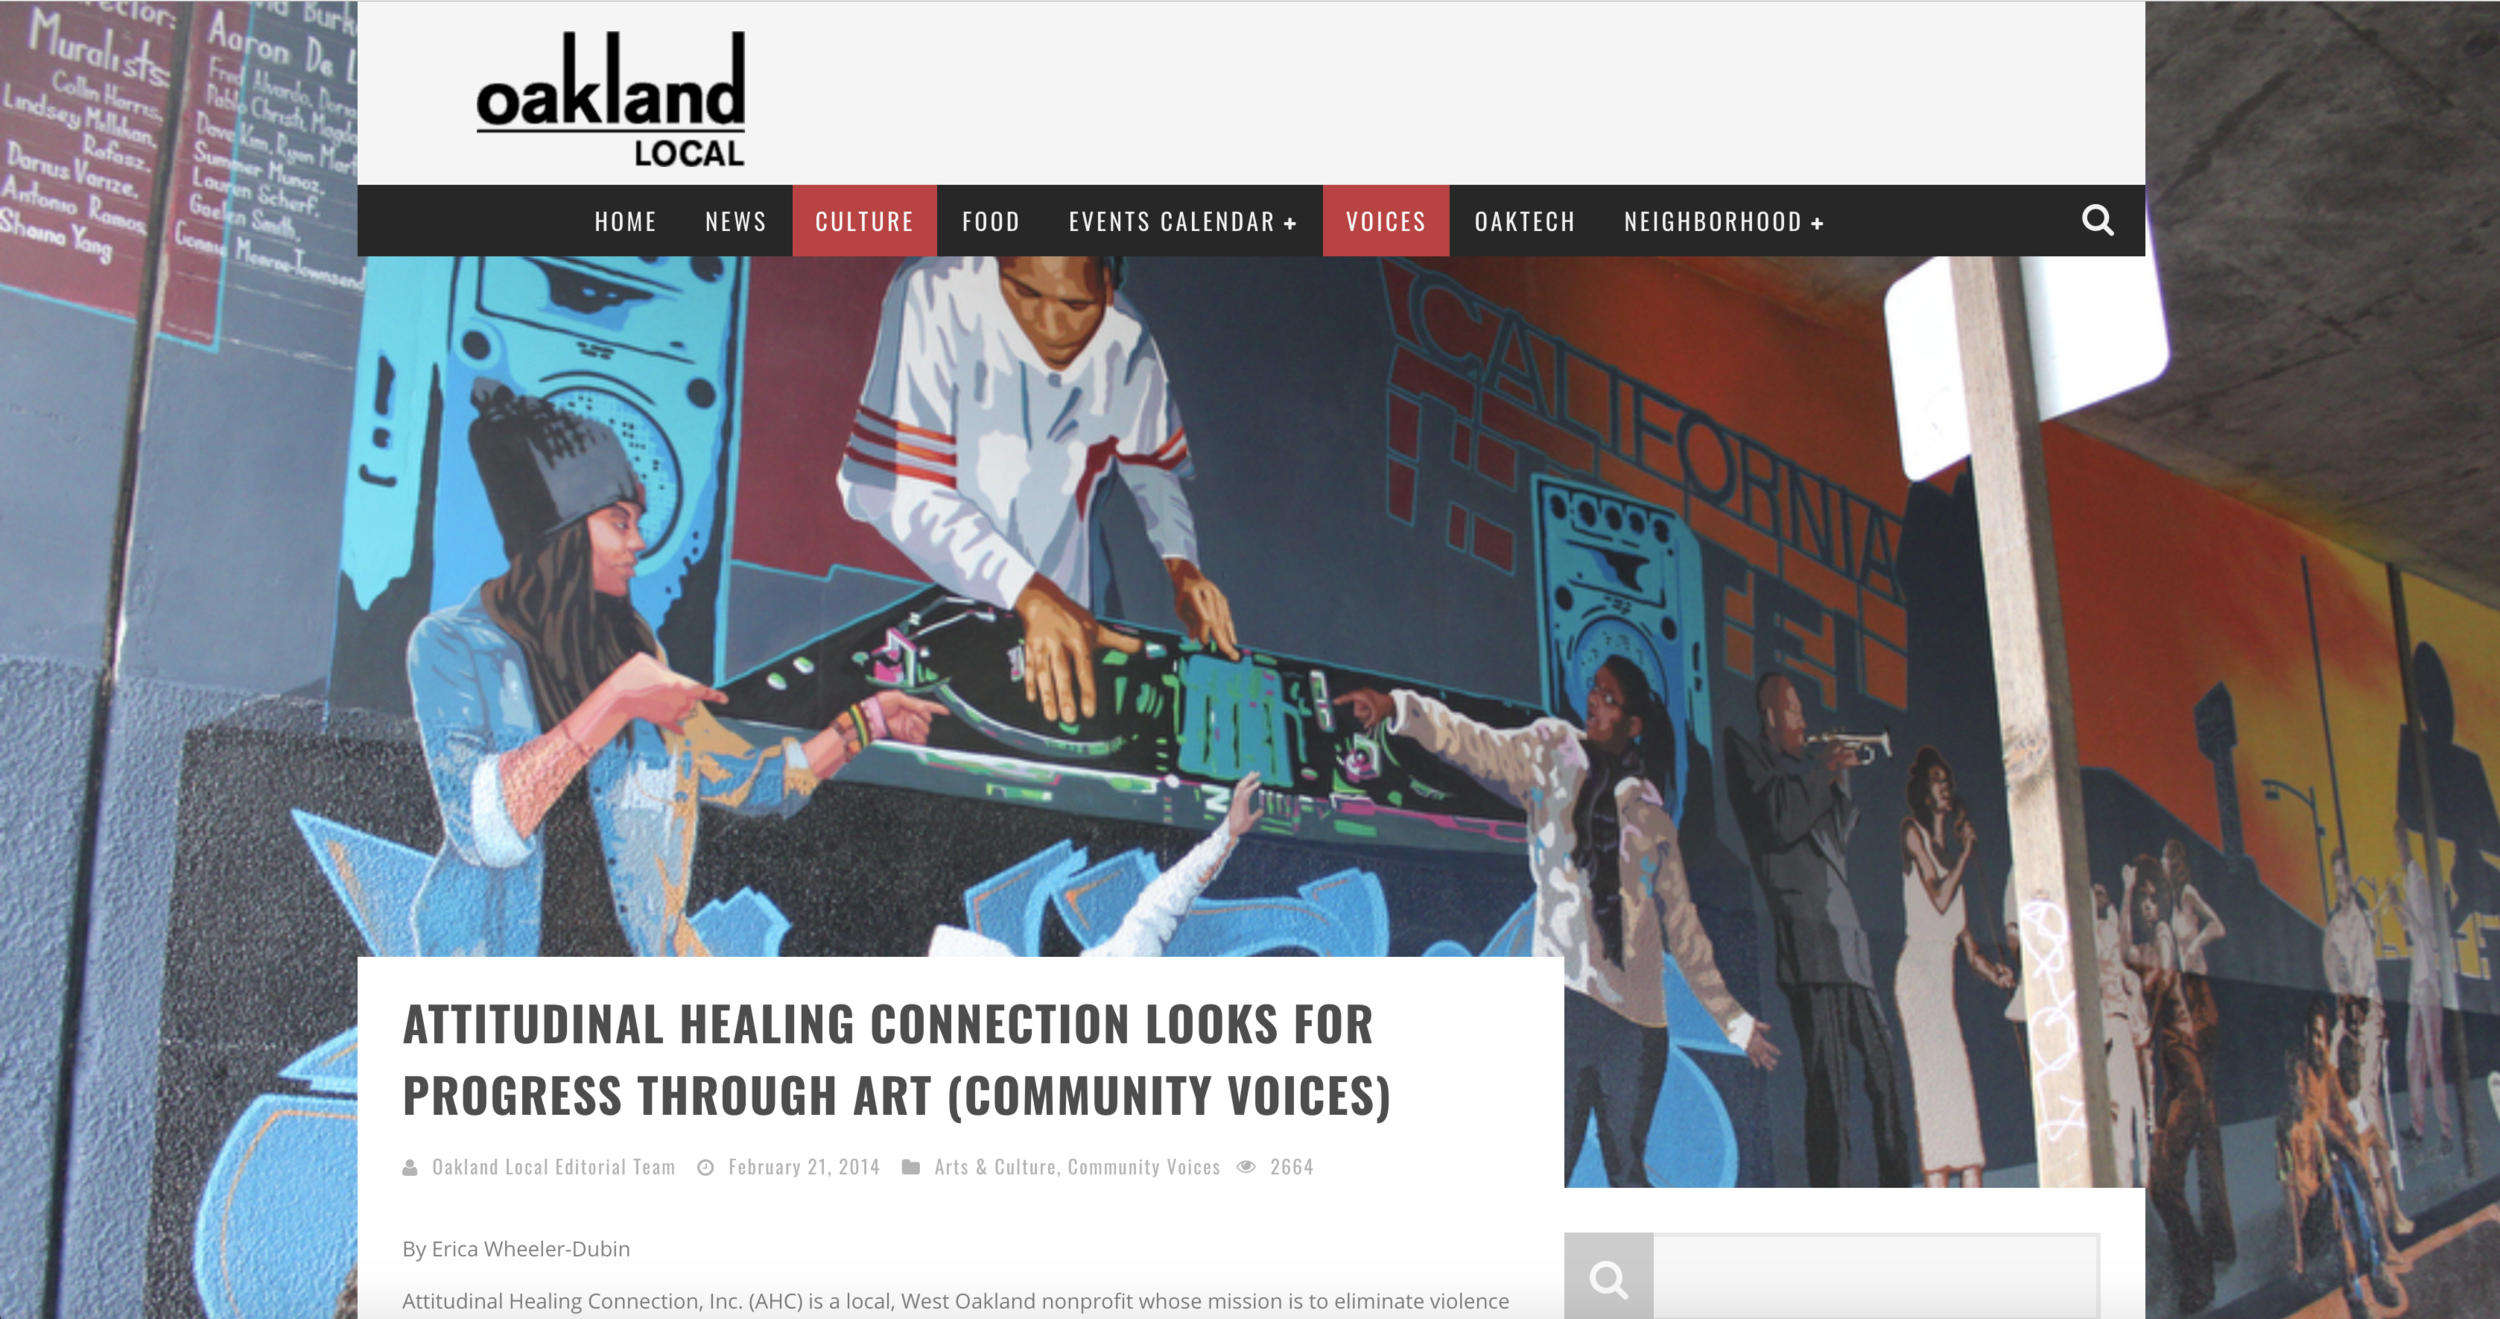 Oakland Local Op-Ed - The Oakland Super Heroes Mural Project (OSH) is a crucial community development effort that will engage 105 youth as change agents in their community. This project aims to resolve issues that plague our city, create over 30 jobs, enhance our neighborhoods, and reduce blight... These murals will serve as a gateway to West and Downtown Oakland and The Oakland Super Heroes Mural Project will become a key component of how this community is perceived.